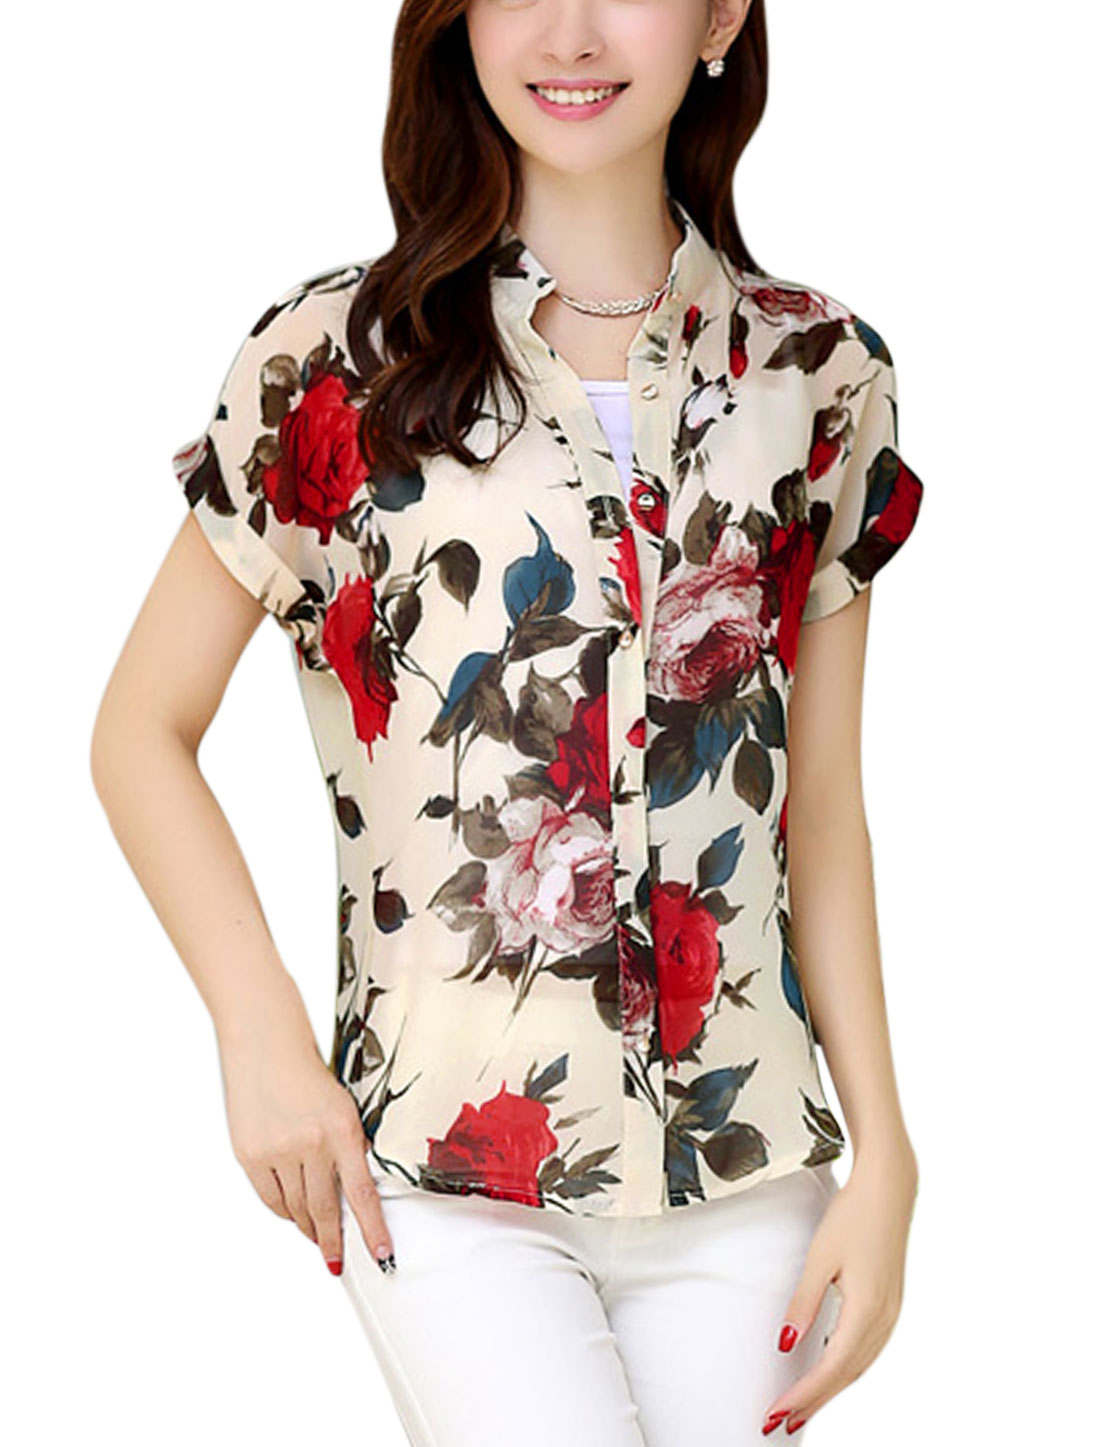 Lady Floral Prints Beige Red Shirt w Spaghetti Straps Cami Top Beige Red S